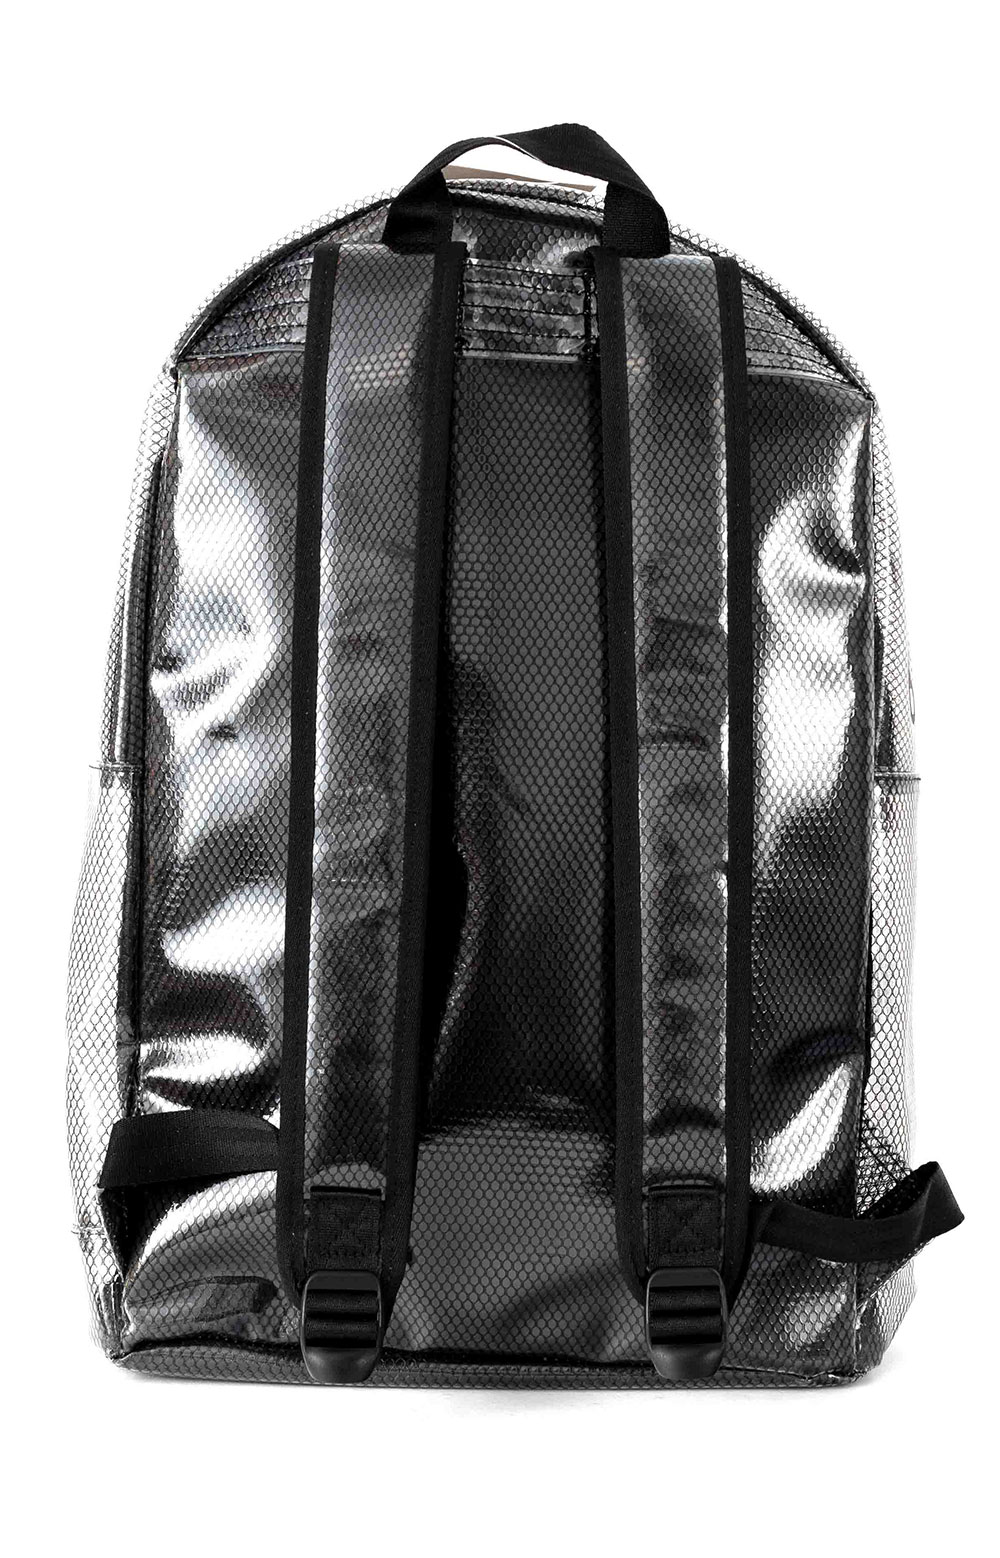 (CH1151) Supercize Clear Backpack - Black  3